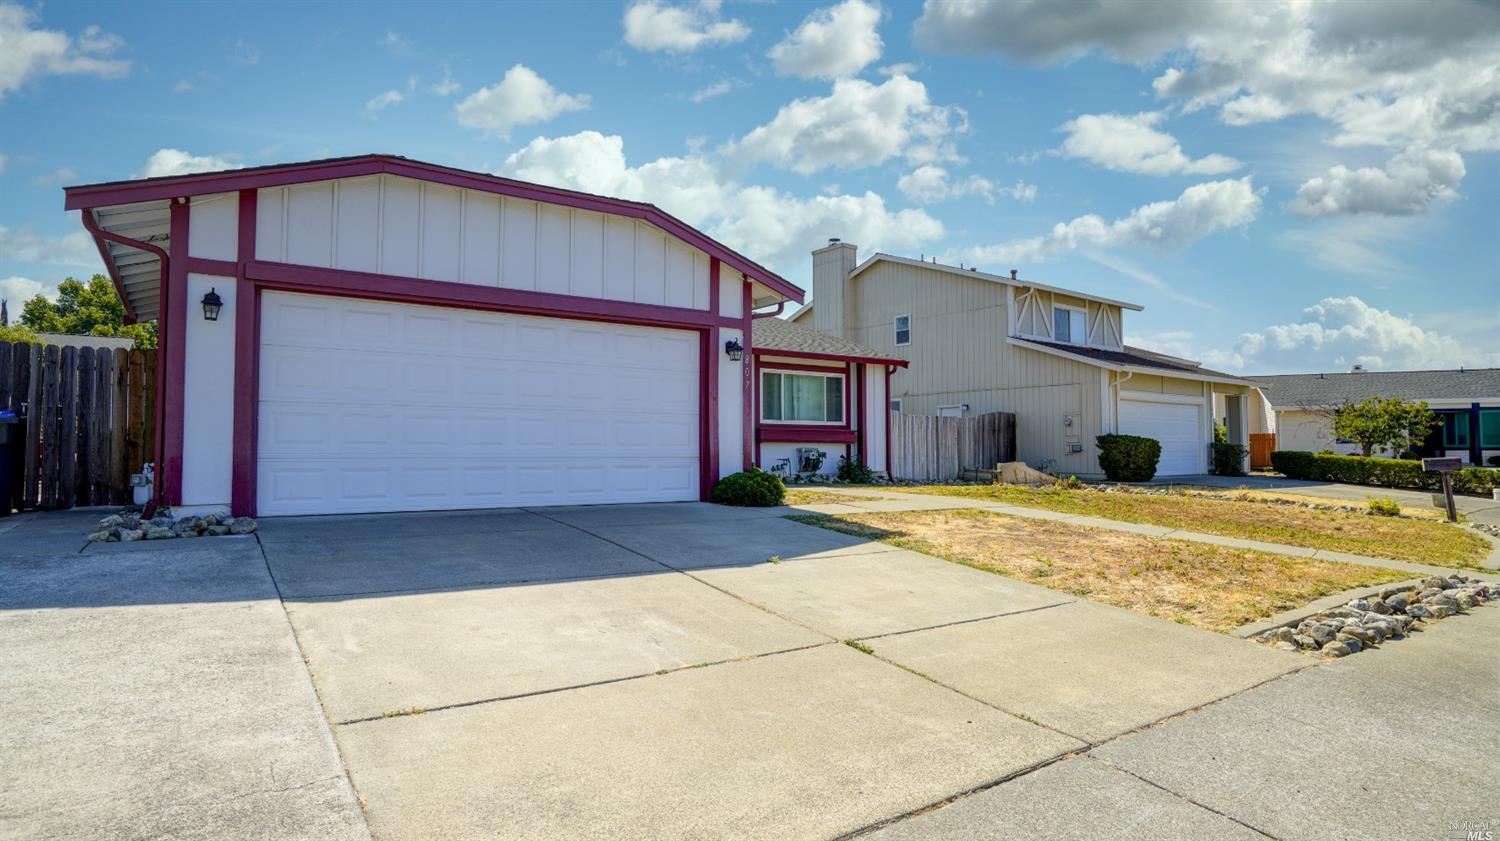 1 level home, in a court like location. Home offers 4 spacious bedrooms, with an open concept kitche